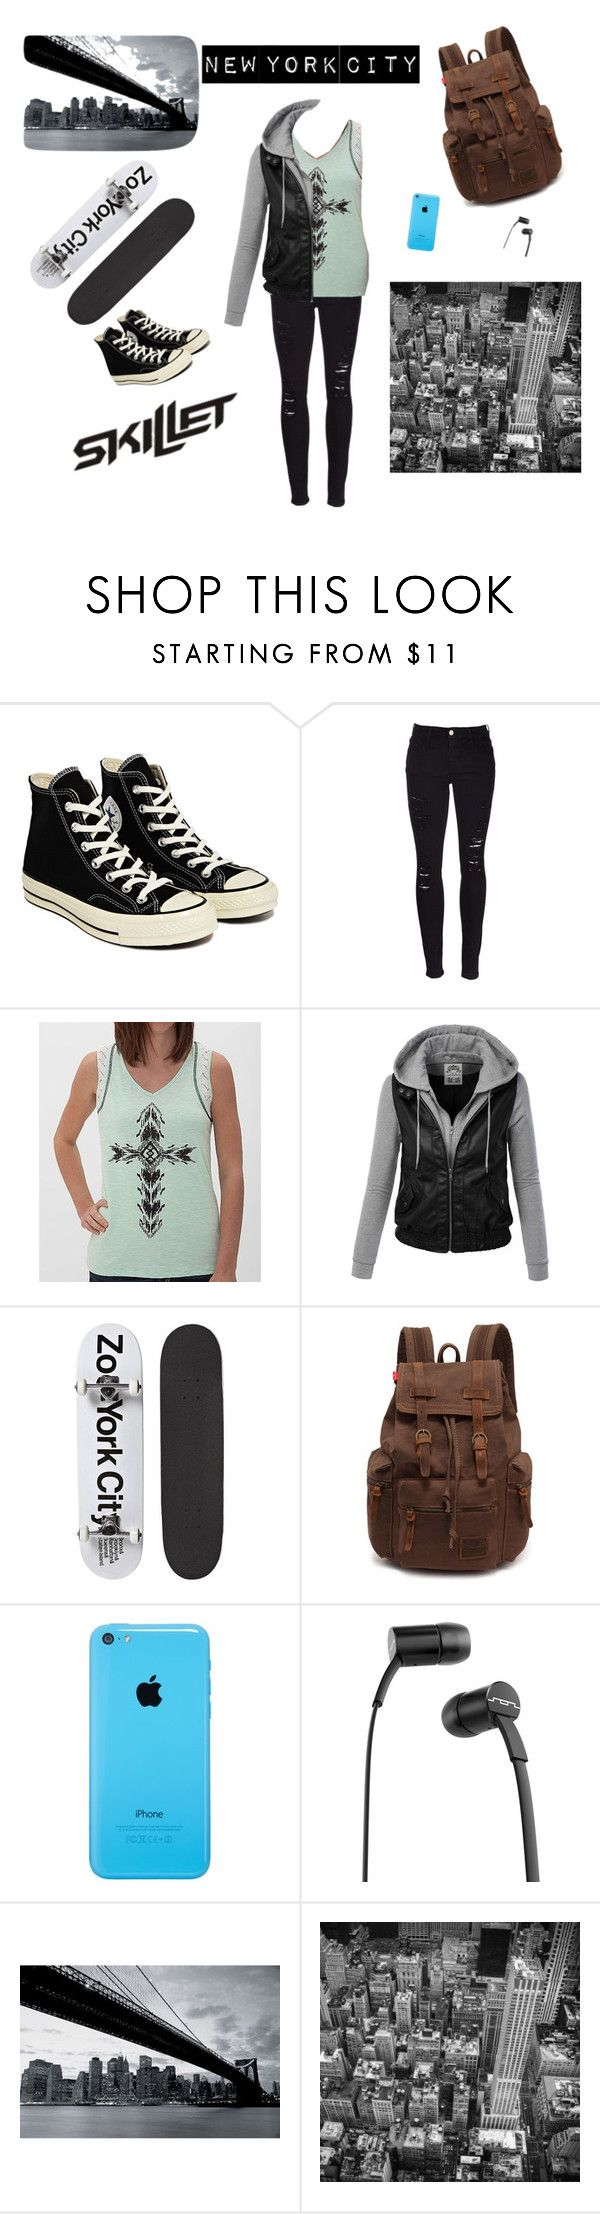 """New York City"" by katrina44a ❤ liked on Polyvore featuring Converse, Frame Denim, Daytrip, Zoo York, SOL Republic, 1Wall, women's clothing, women's fashion, women and female"